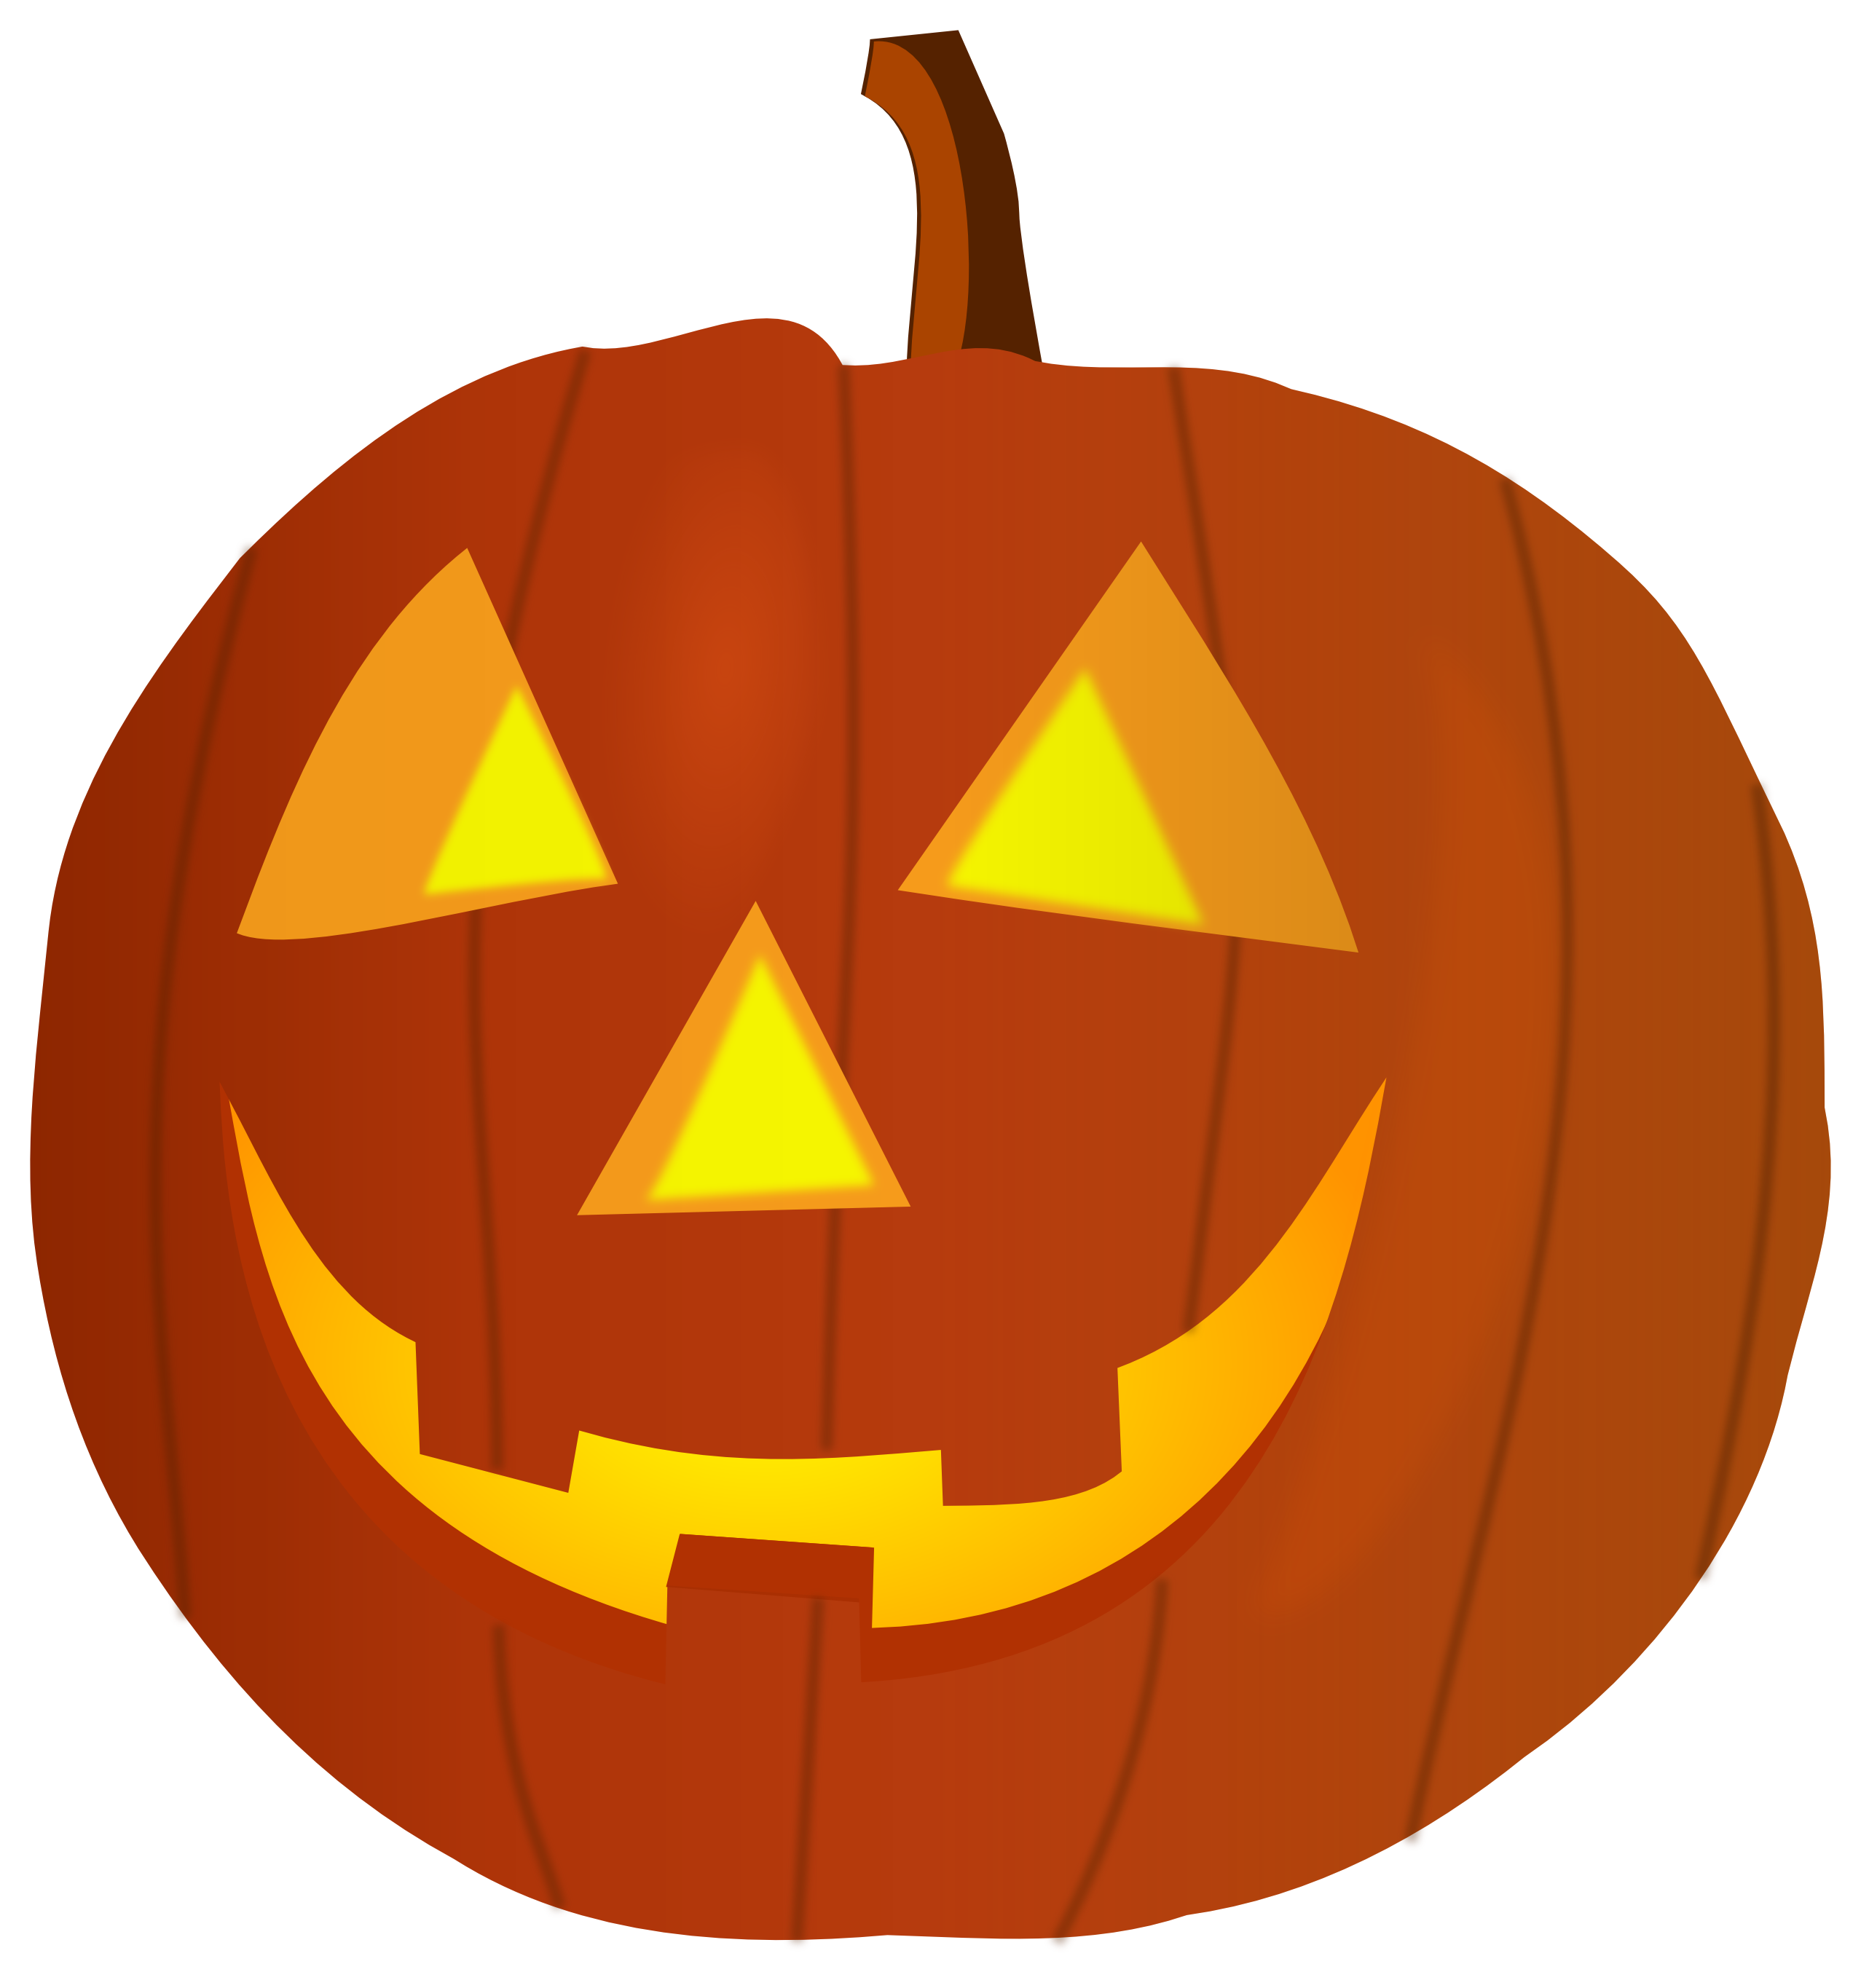 Enter To Win Awesome Prizes Hcbc Halloween Costume Contest Pumpkin Images Halloween Pumpkin Images Halloween Pumpkins